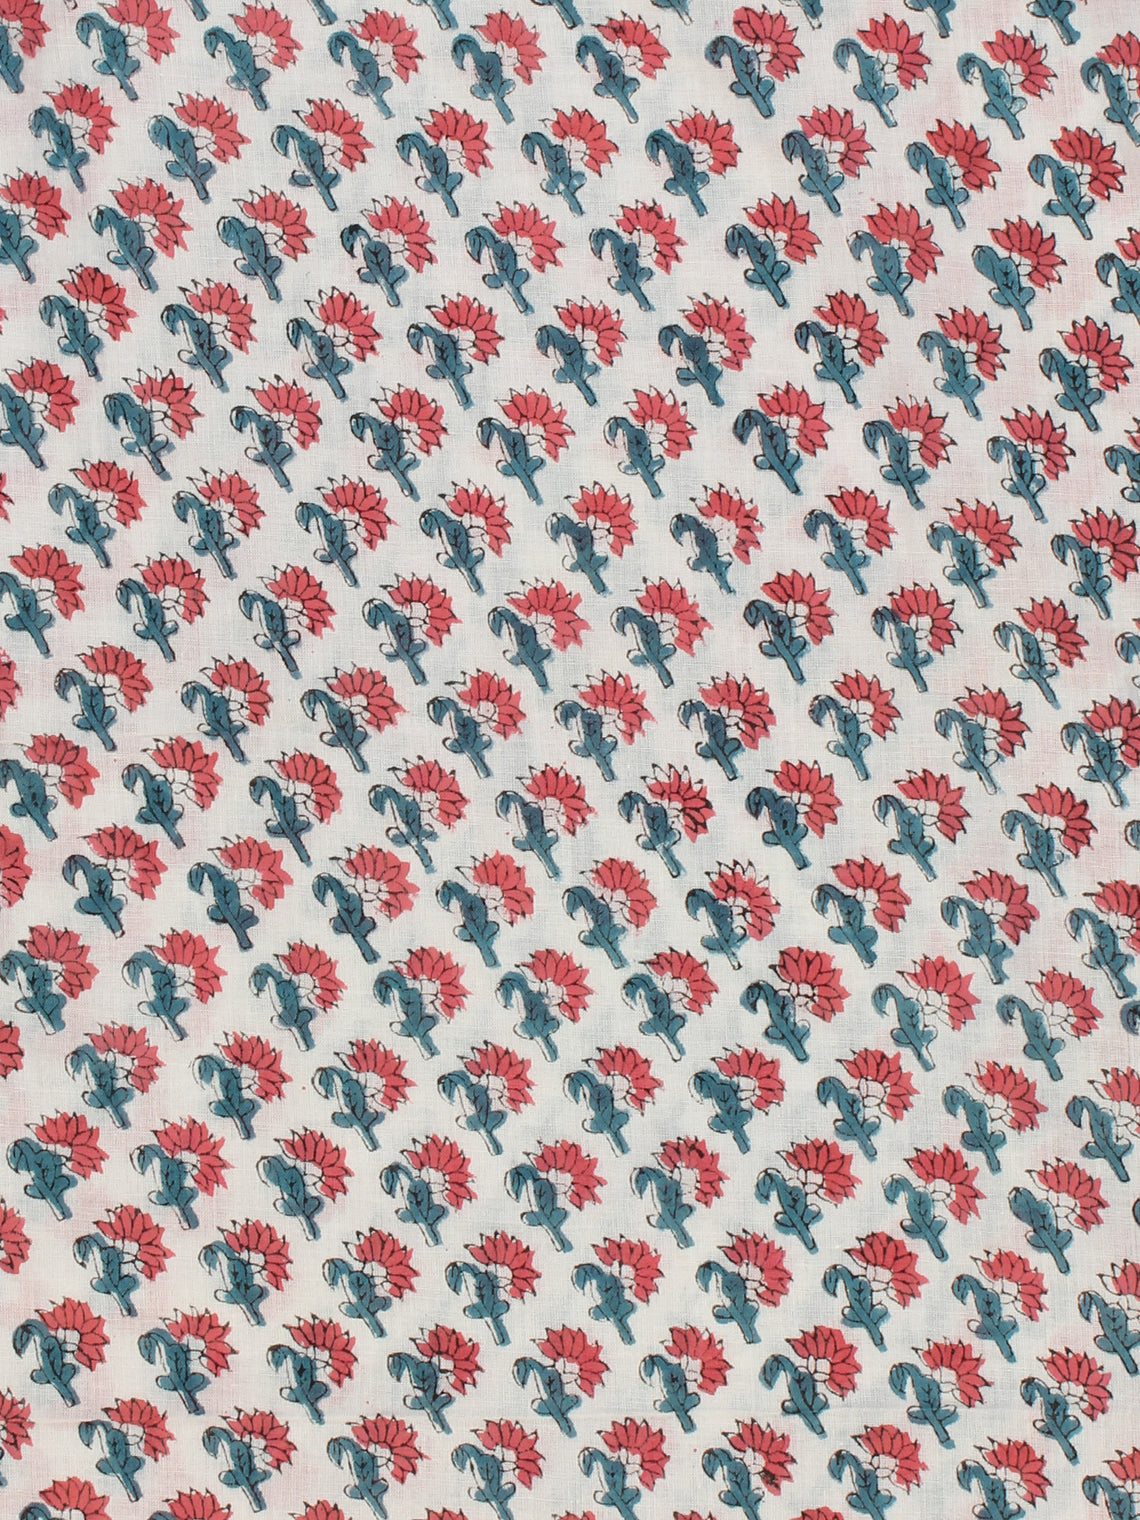 White Teal Coral Hand Block Printed Cotton Fabric Per Meter - F001F2344